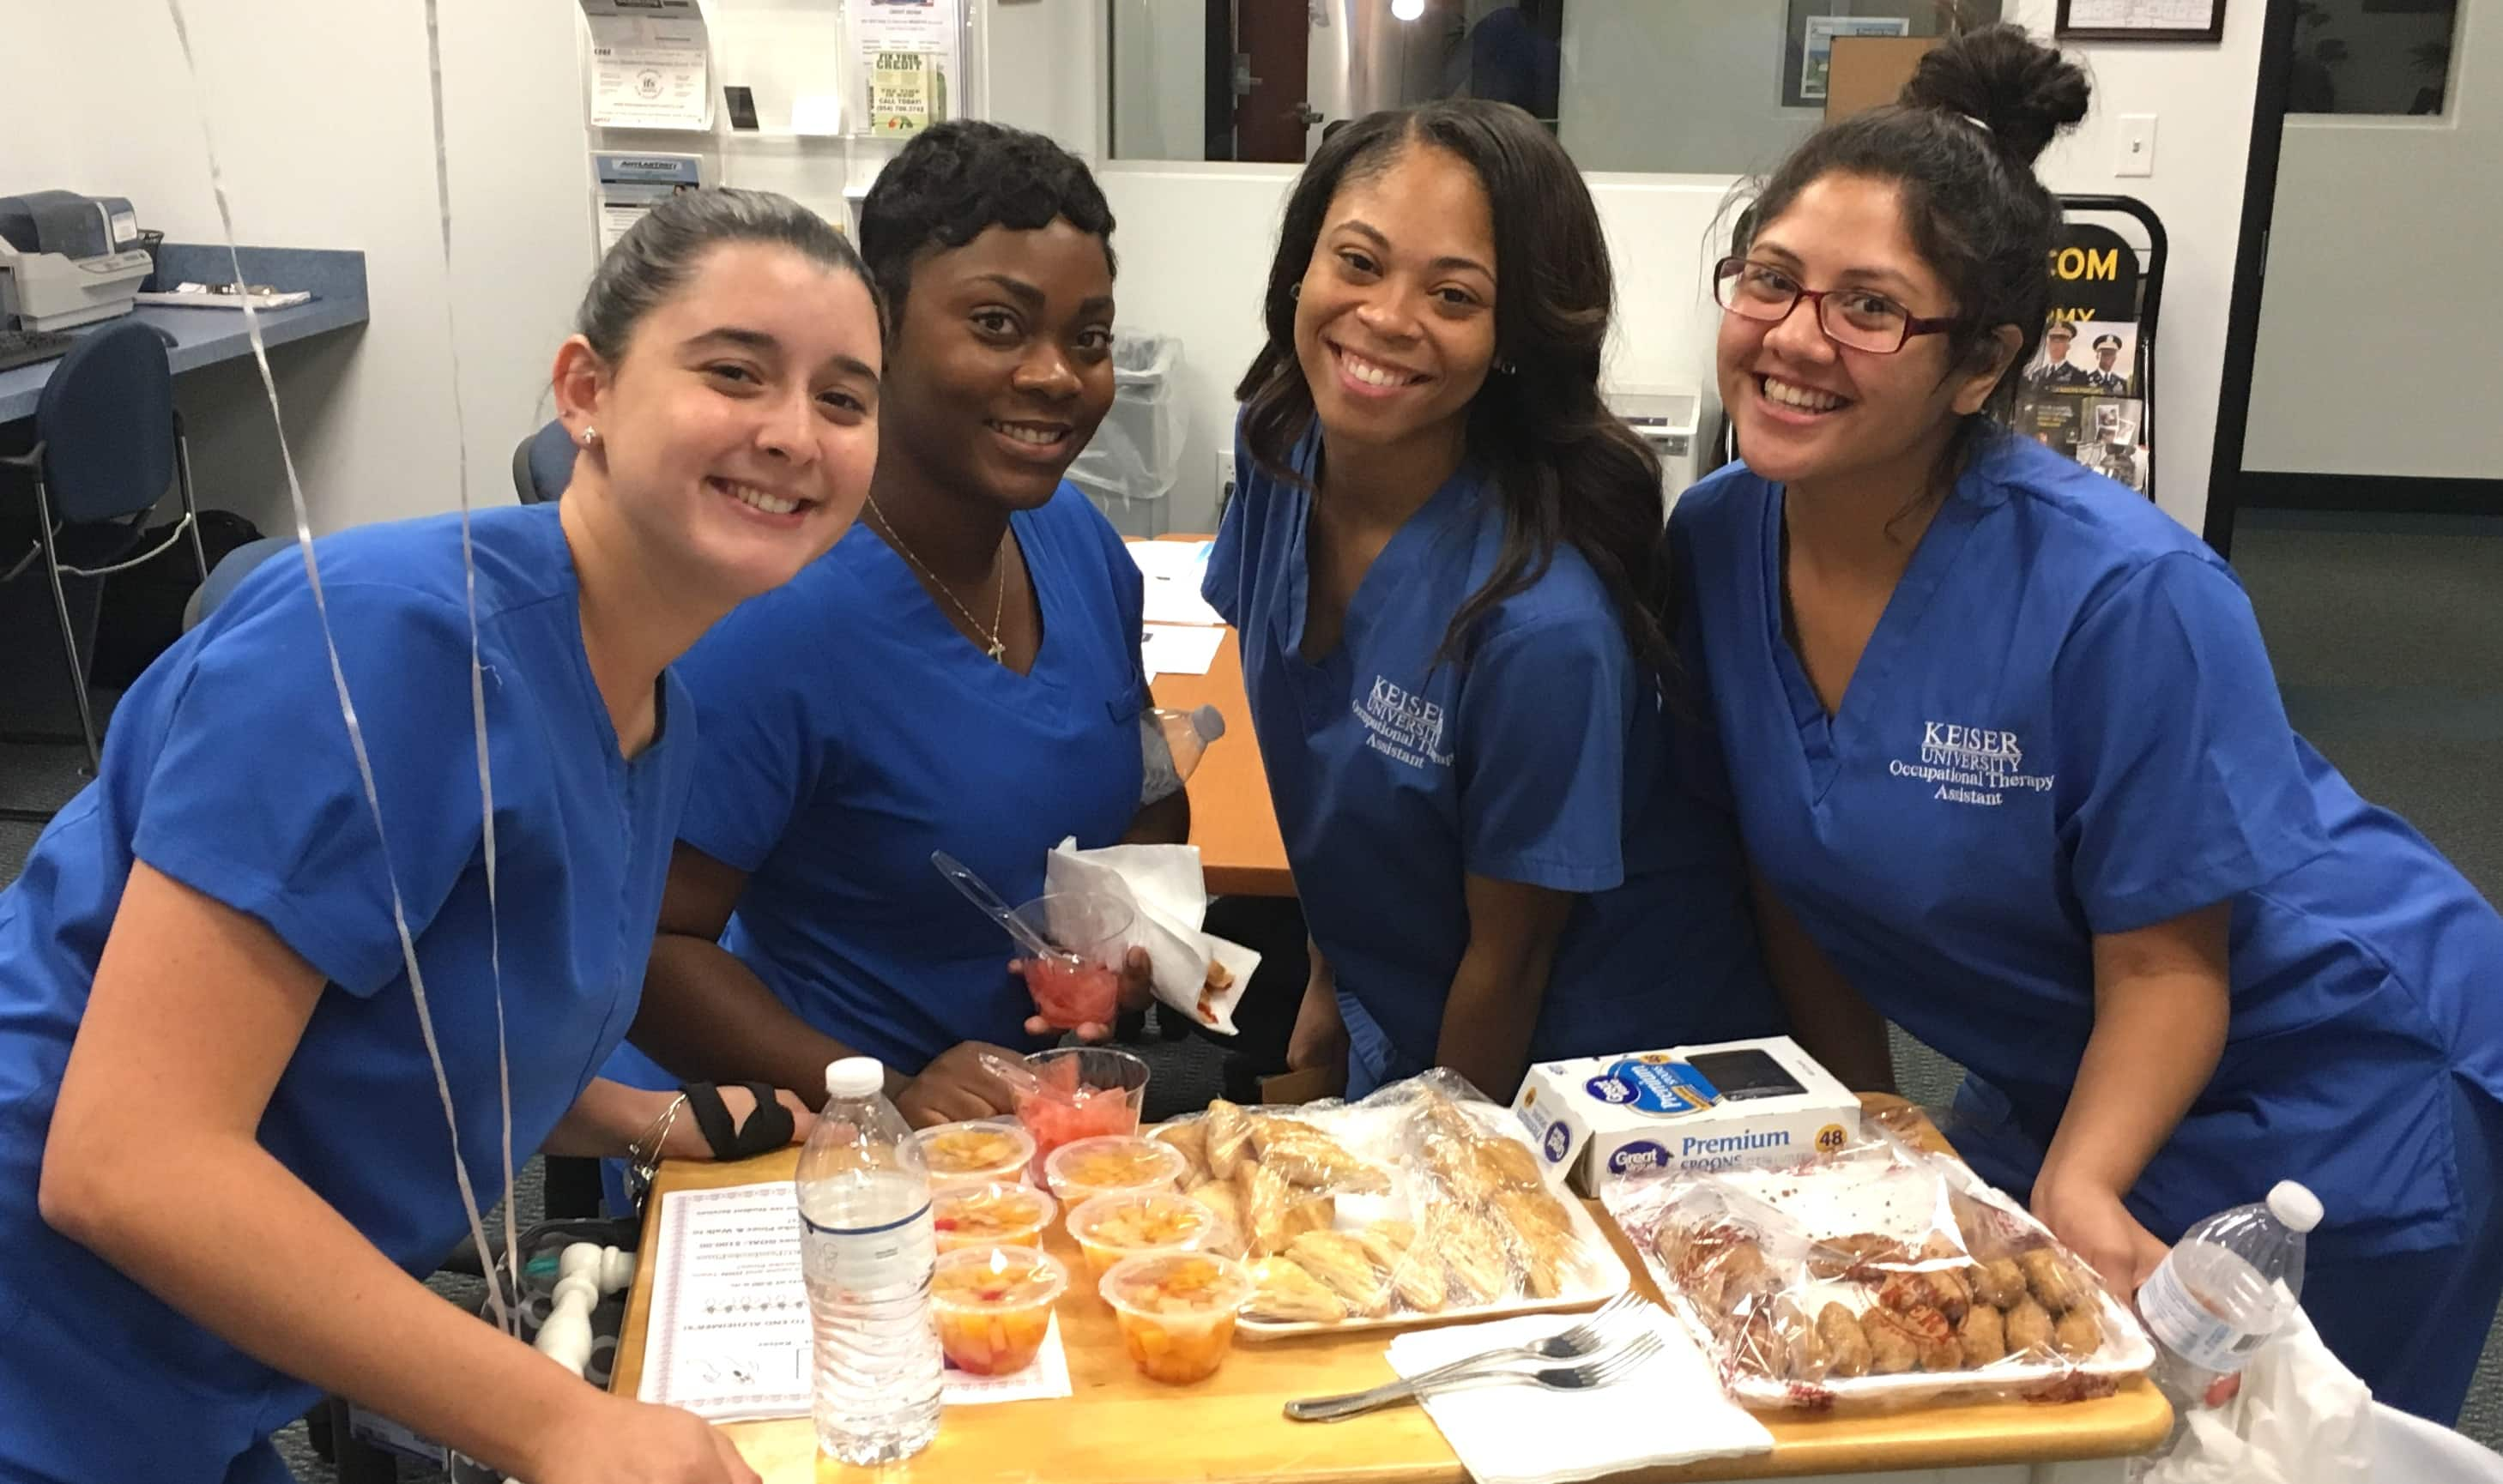 OTA Students at Pembroke Pines Raise Funds for the Cystic Fibrosis Foundation